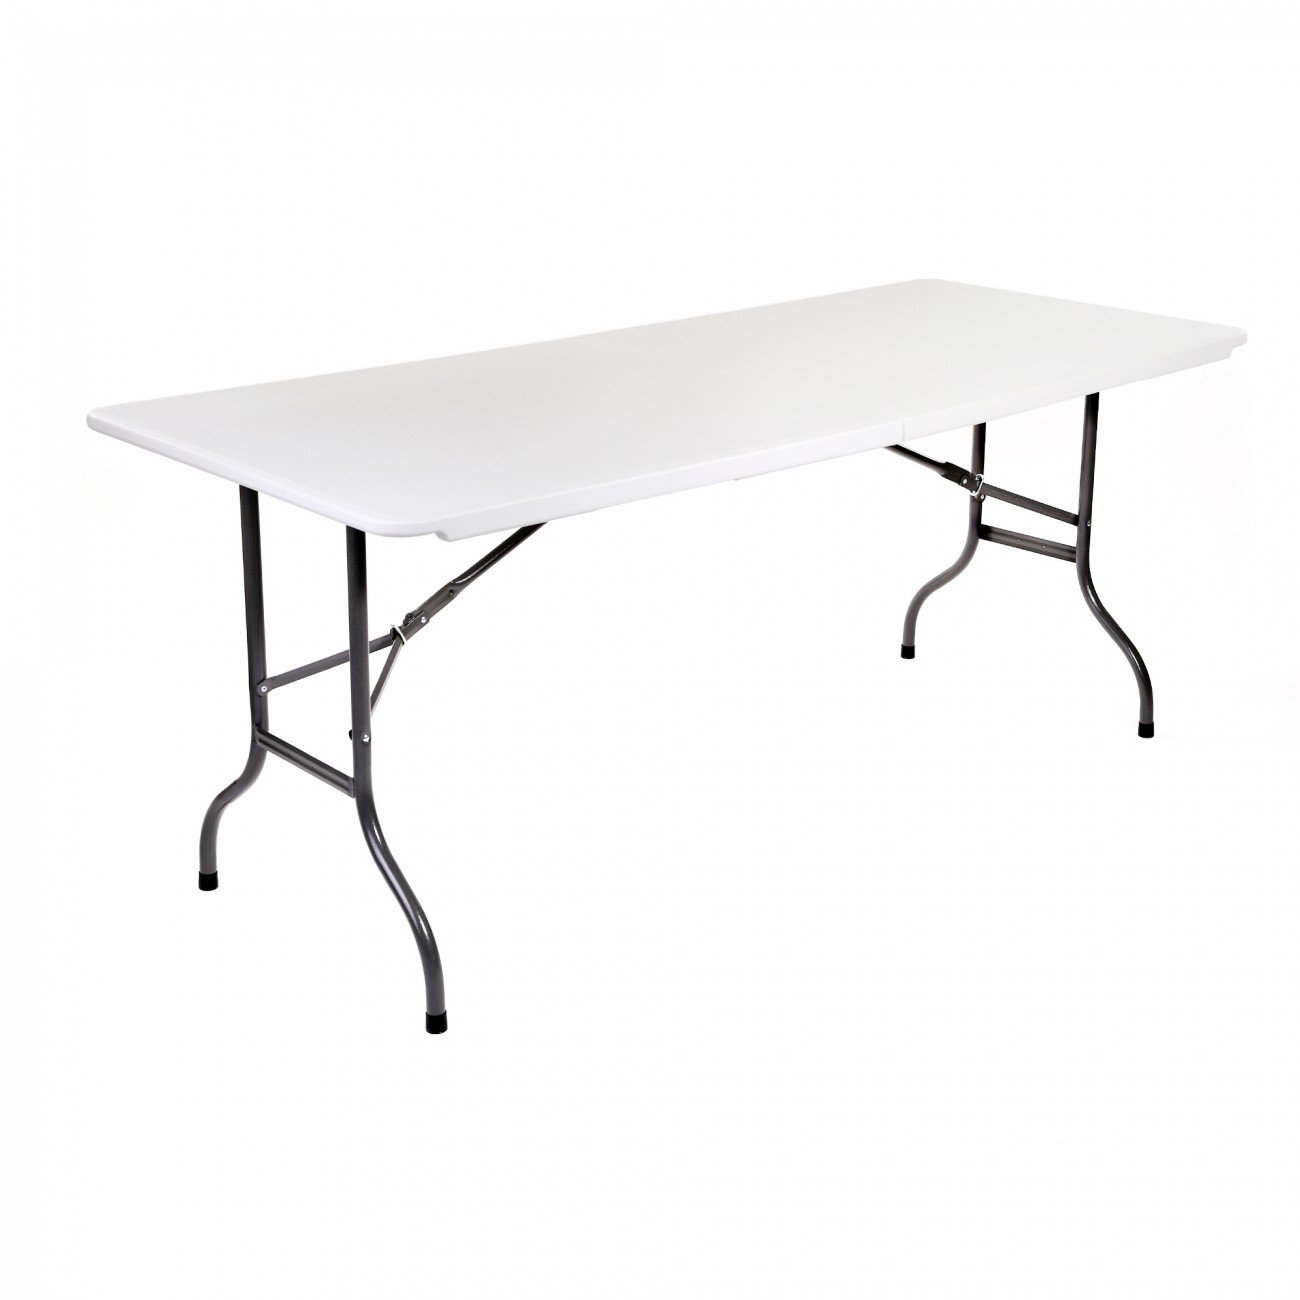 Acheter table pliante table pliable table rabattable table for Table salon de jardin pliante